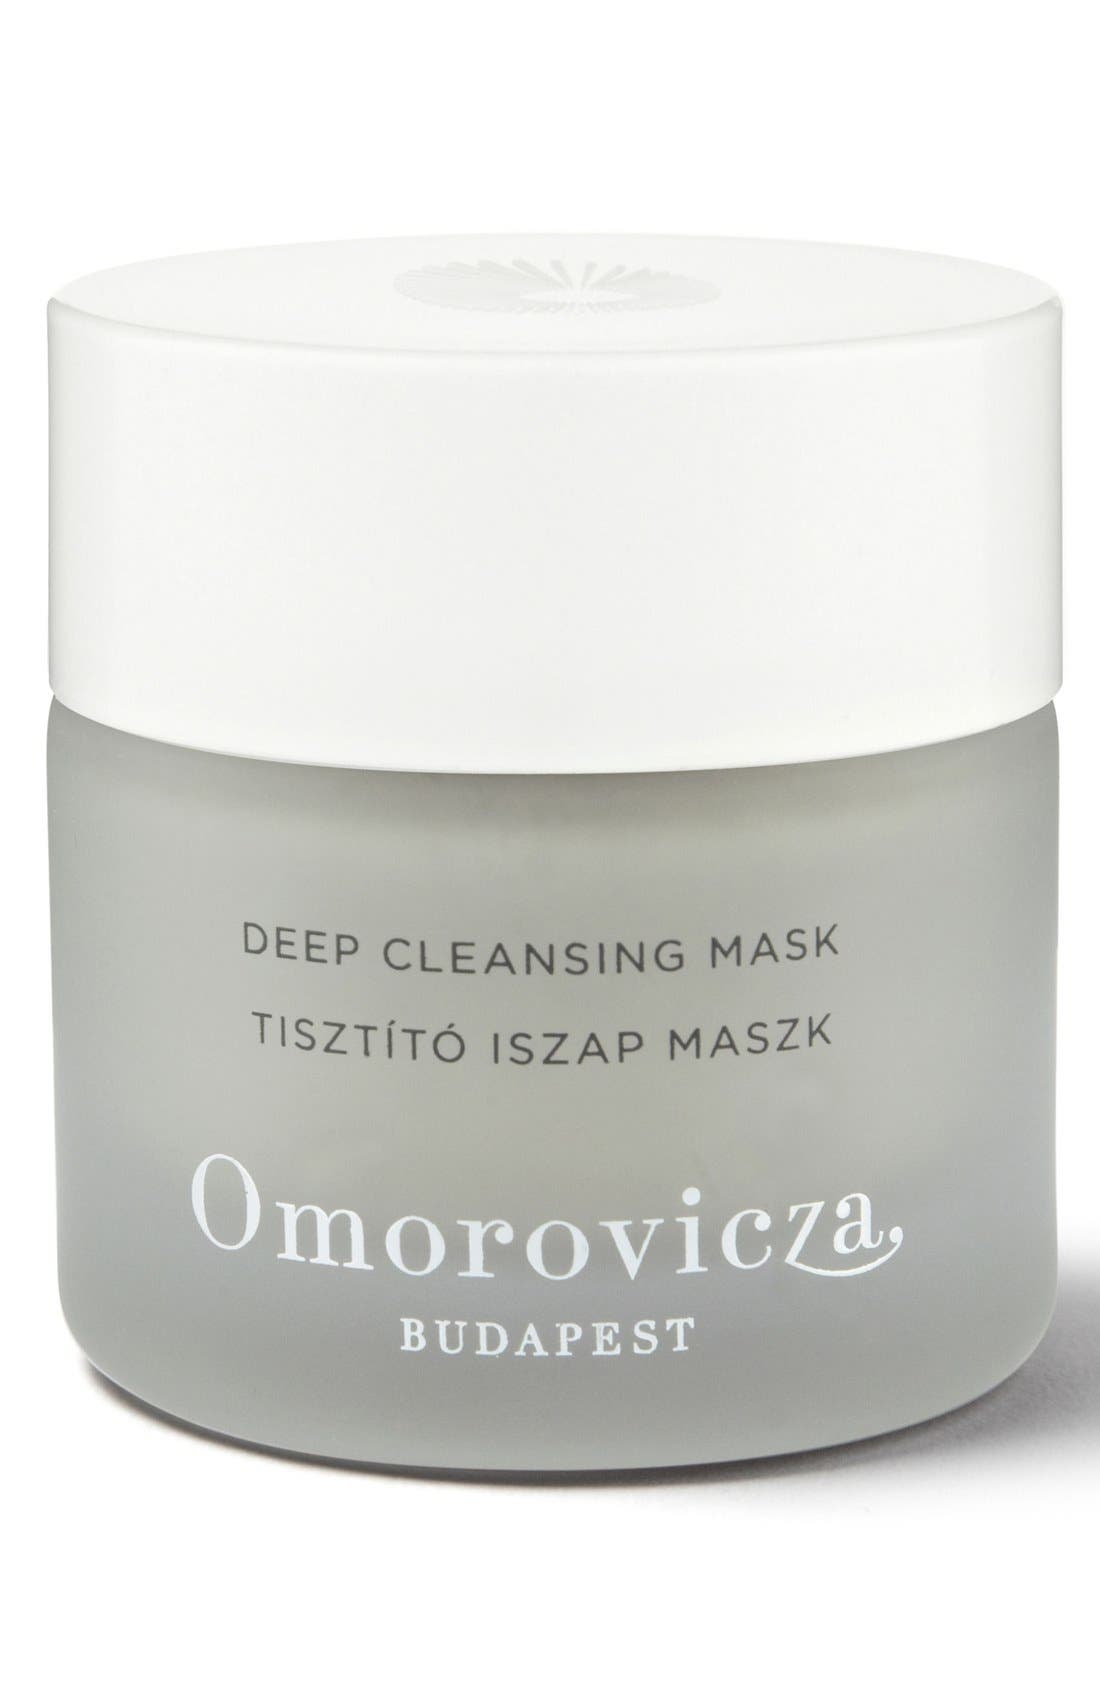 Deep Cleansing Mask,                             Main thumbnail 1, color,                             NO COLOR